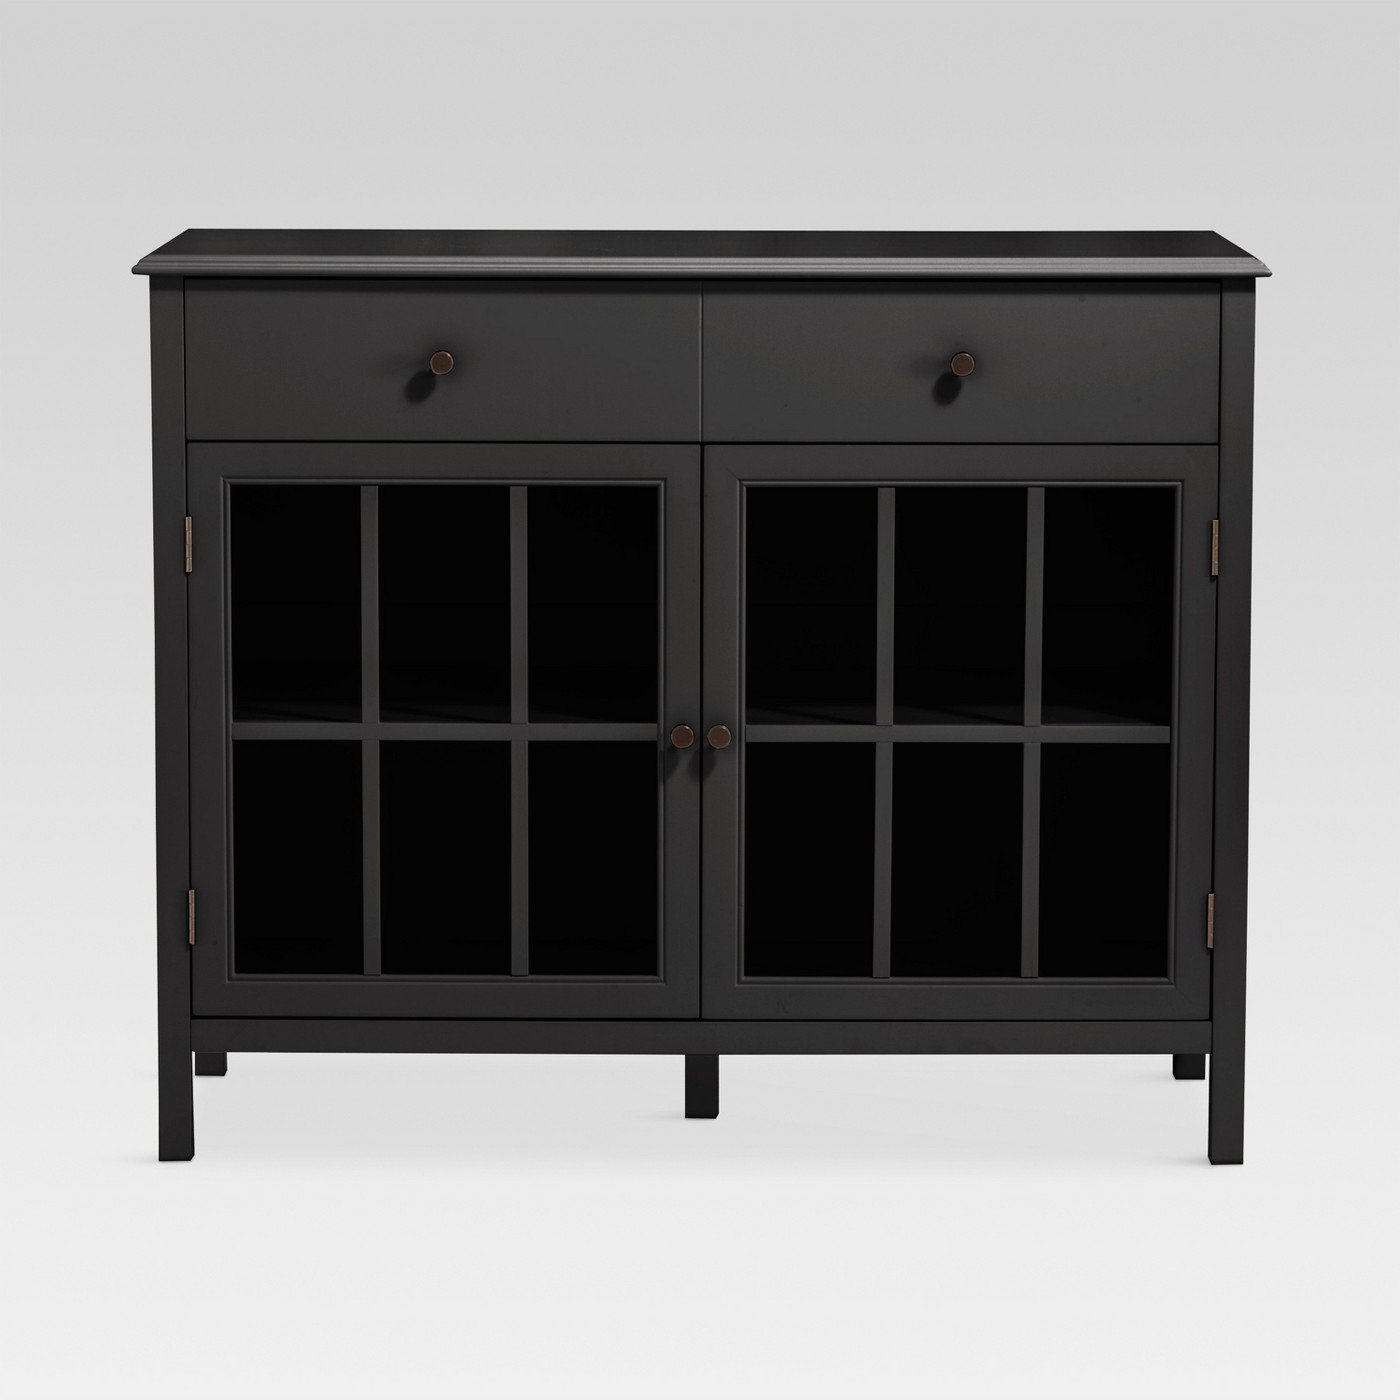 Barn Wood Rosendale Carved Accent Ashley Furniture Glass Throughout Kattie 4 Door Cabinets (View 16 of 20)